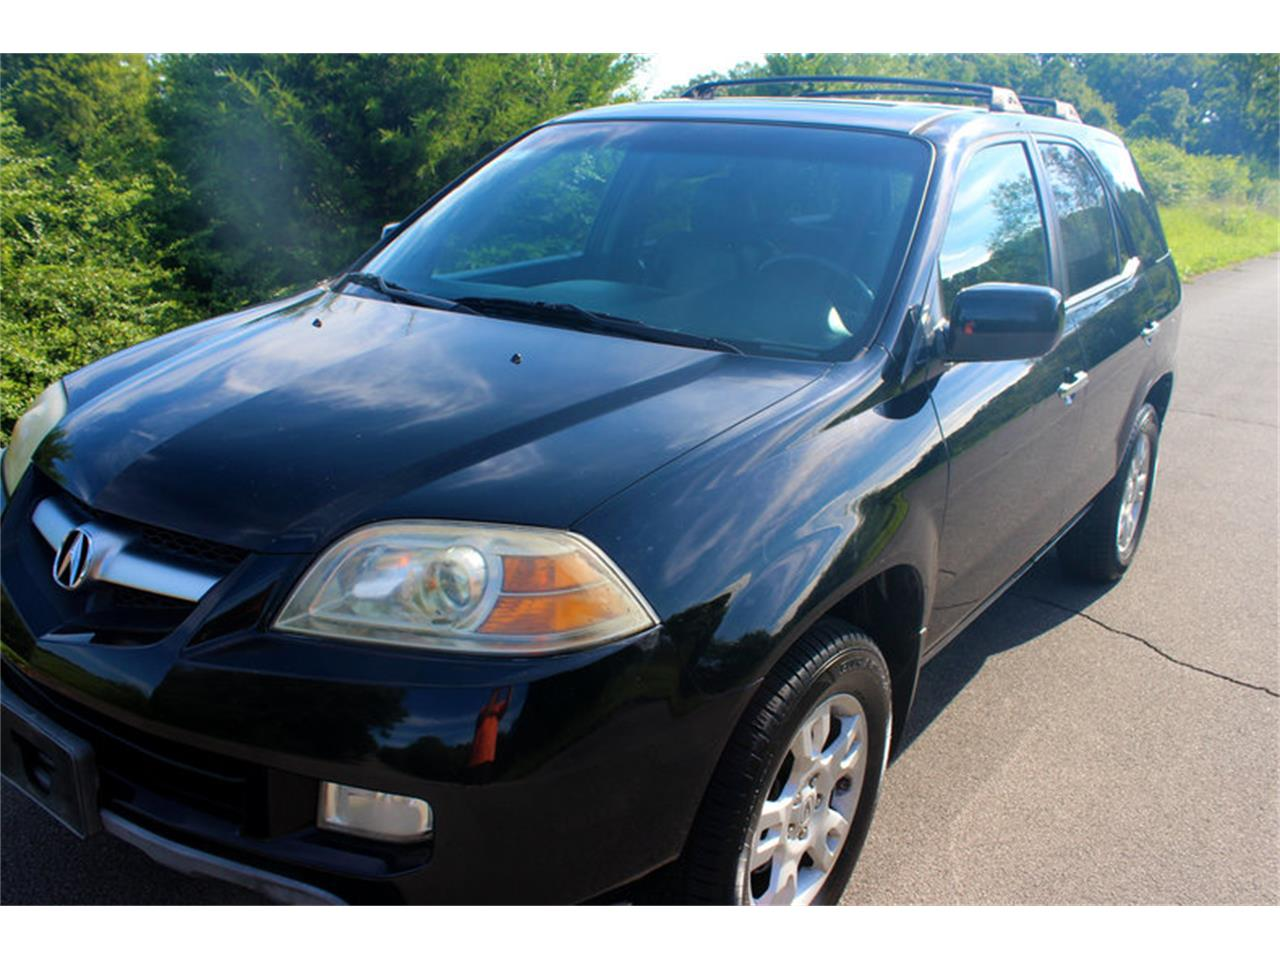 Large Picture of '05 Acura MDX - $3,995.00 Offered by Smoky Mountain Traders - O91K